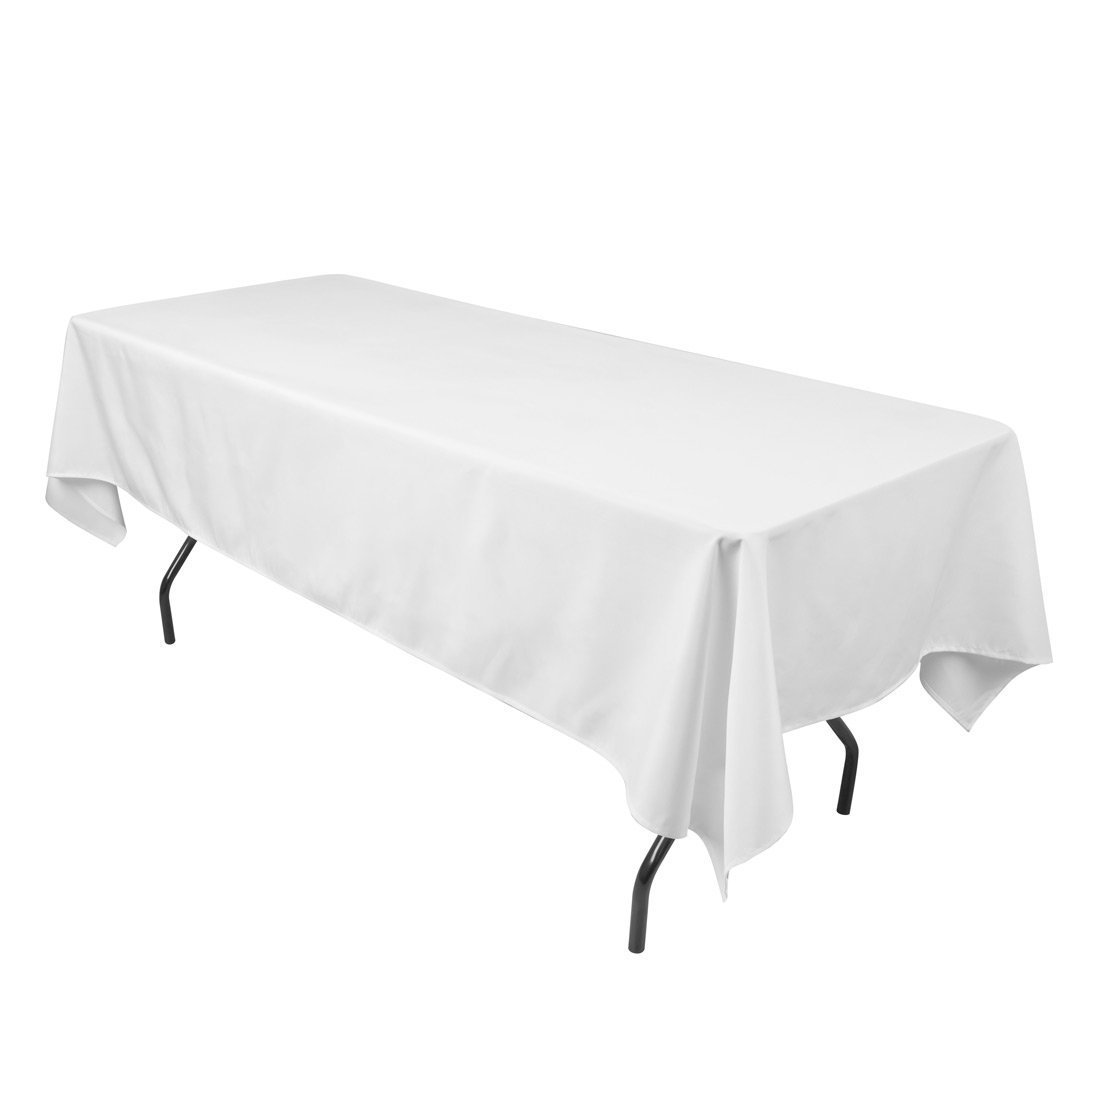 Craft and Party - 10 pcs Rectangular Tablecloth for Home, Party, Wedding or Restaurant Use (60'' X 102'', White) by Craft & Party